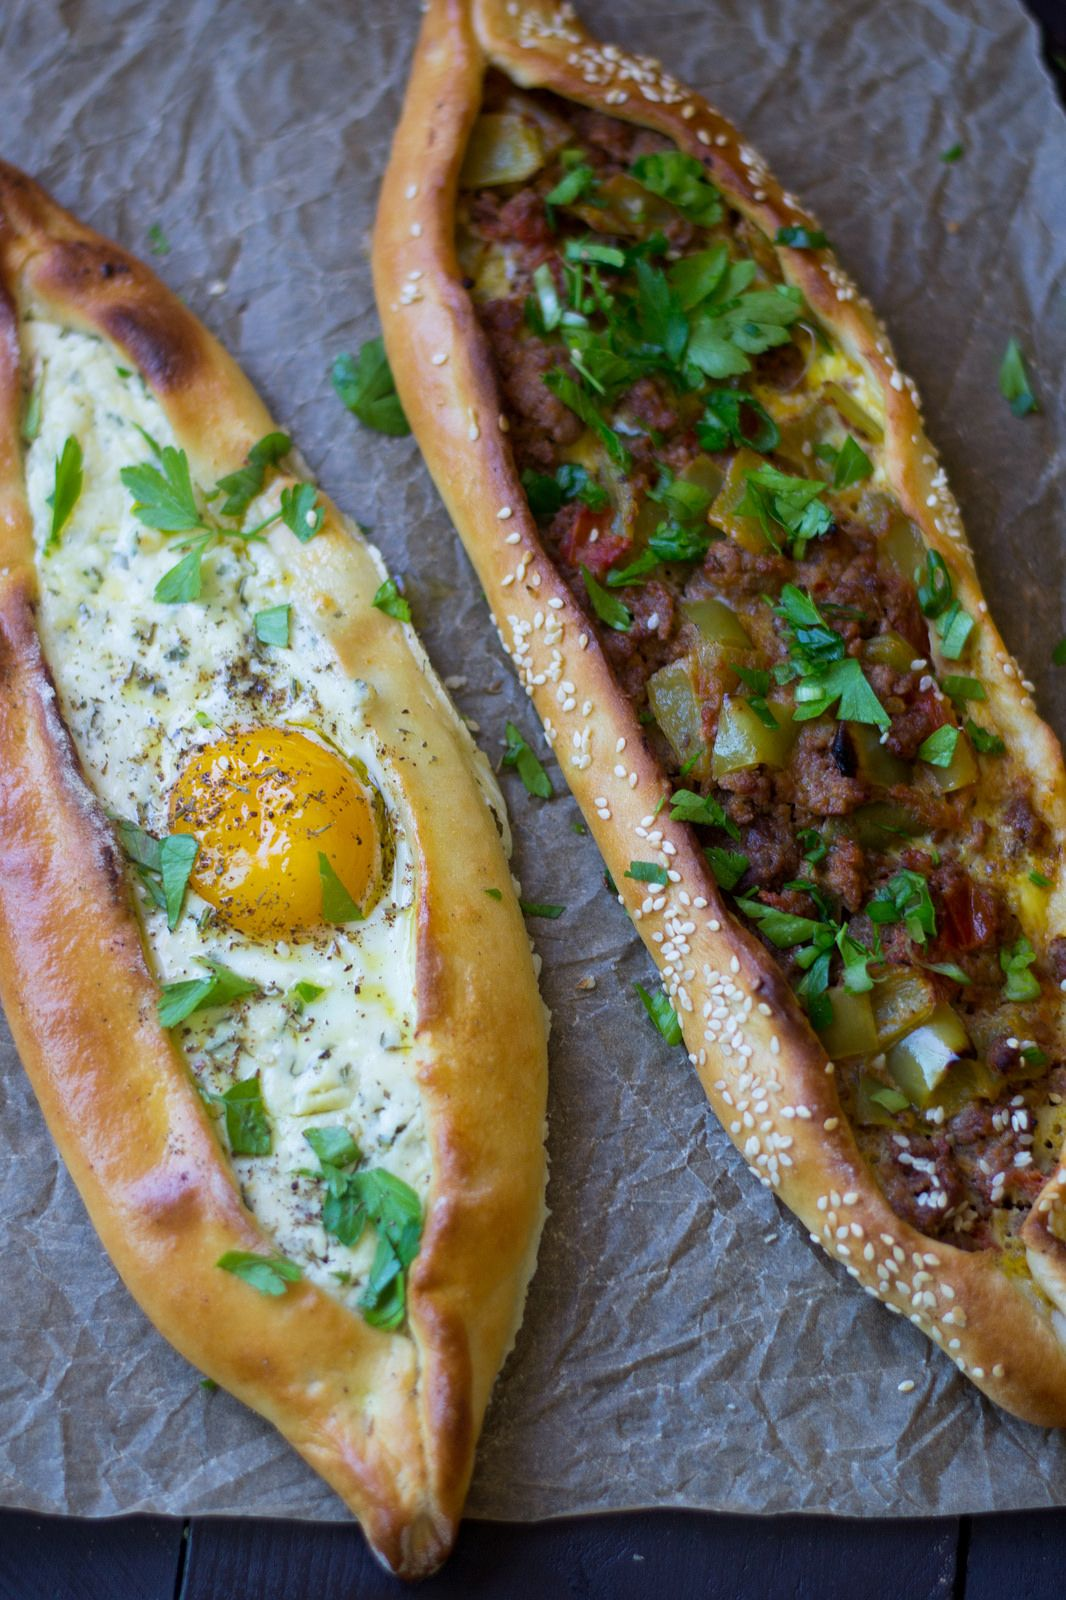 Cucina Turca Turkish Pide Turkish Pizza With 2 Different Fillings